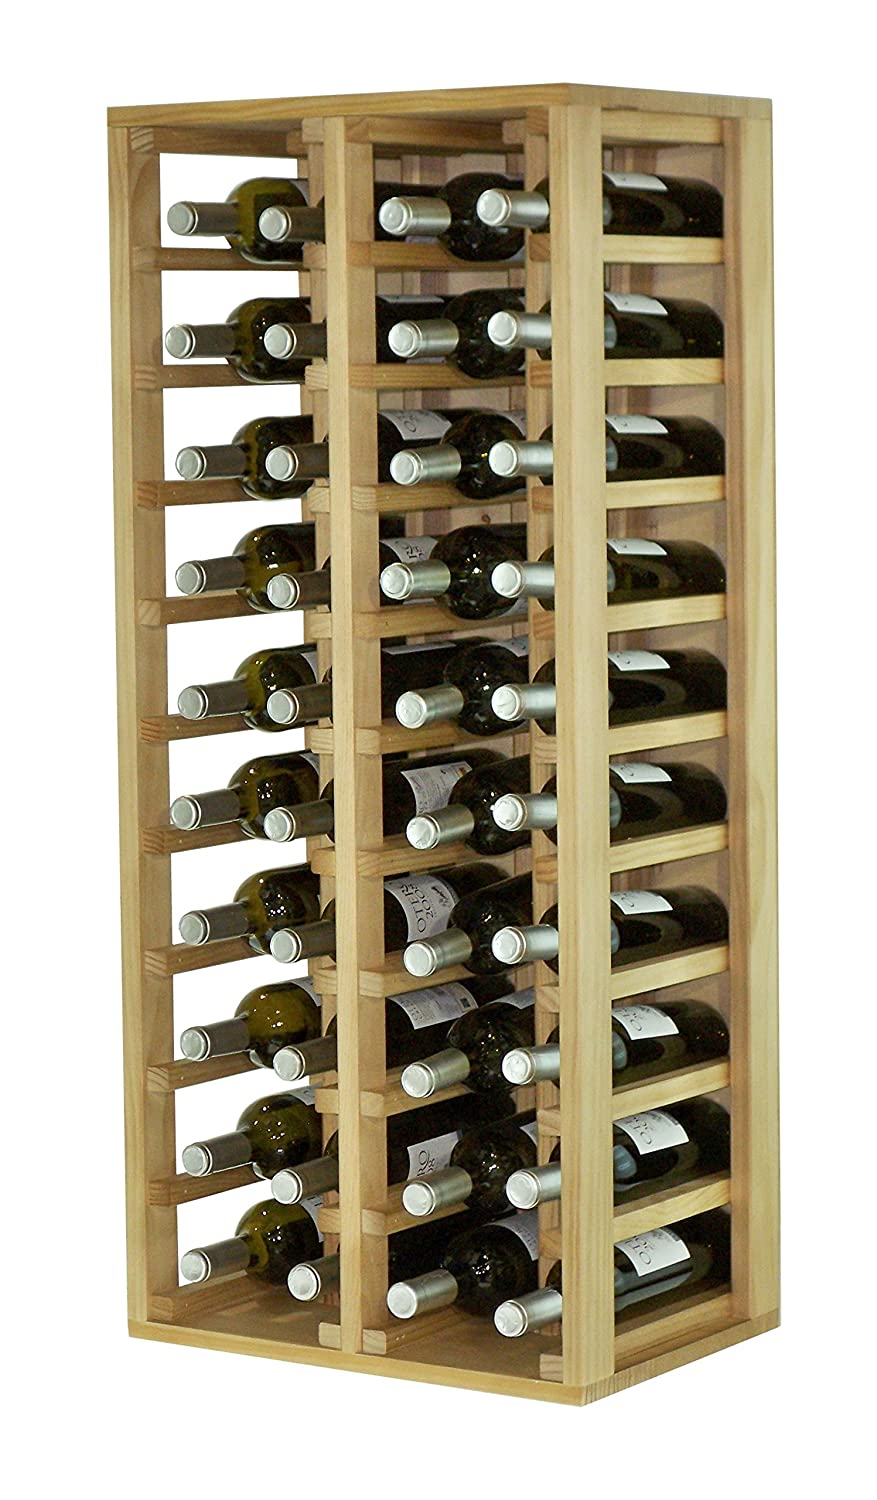 Expovinalia Special Wine Rack with 4 modules, holds 40 bottles, Wood, Rustic design, 44 x 32 x 105 cm ex2034